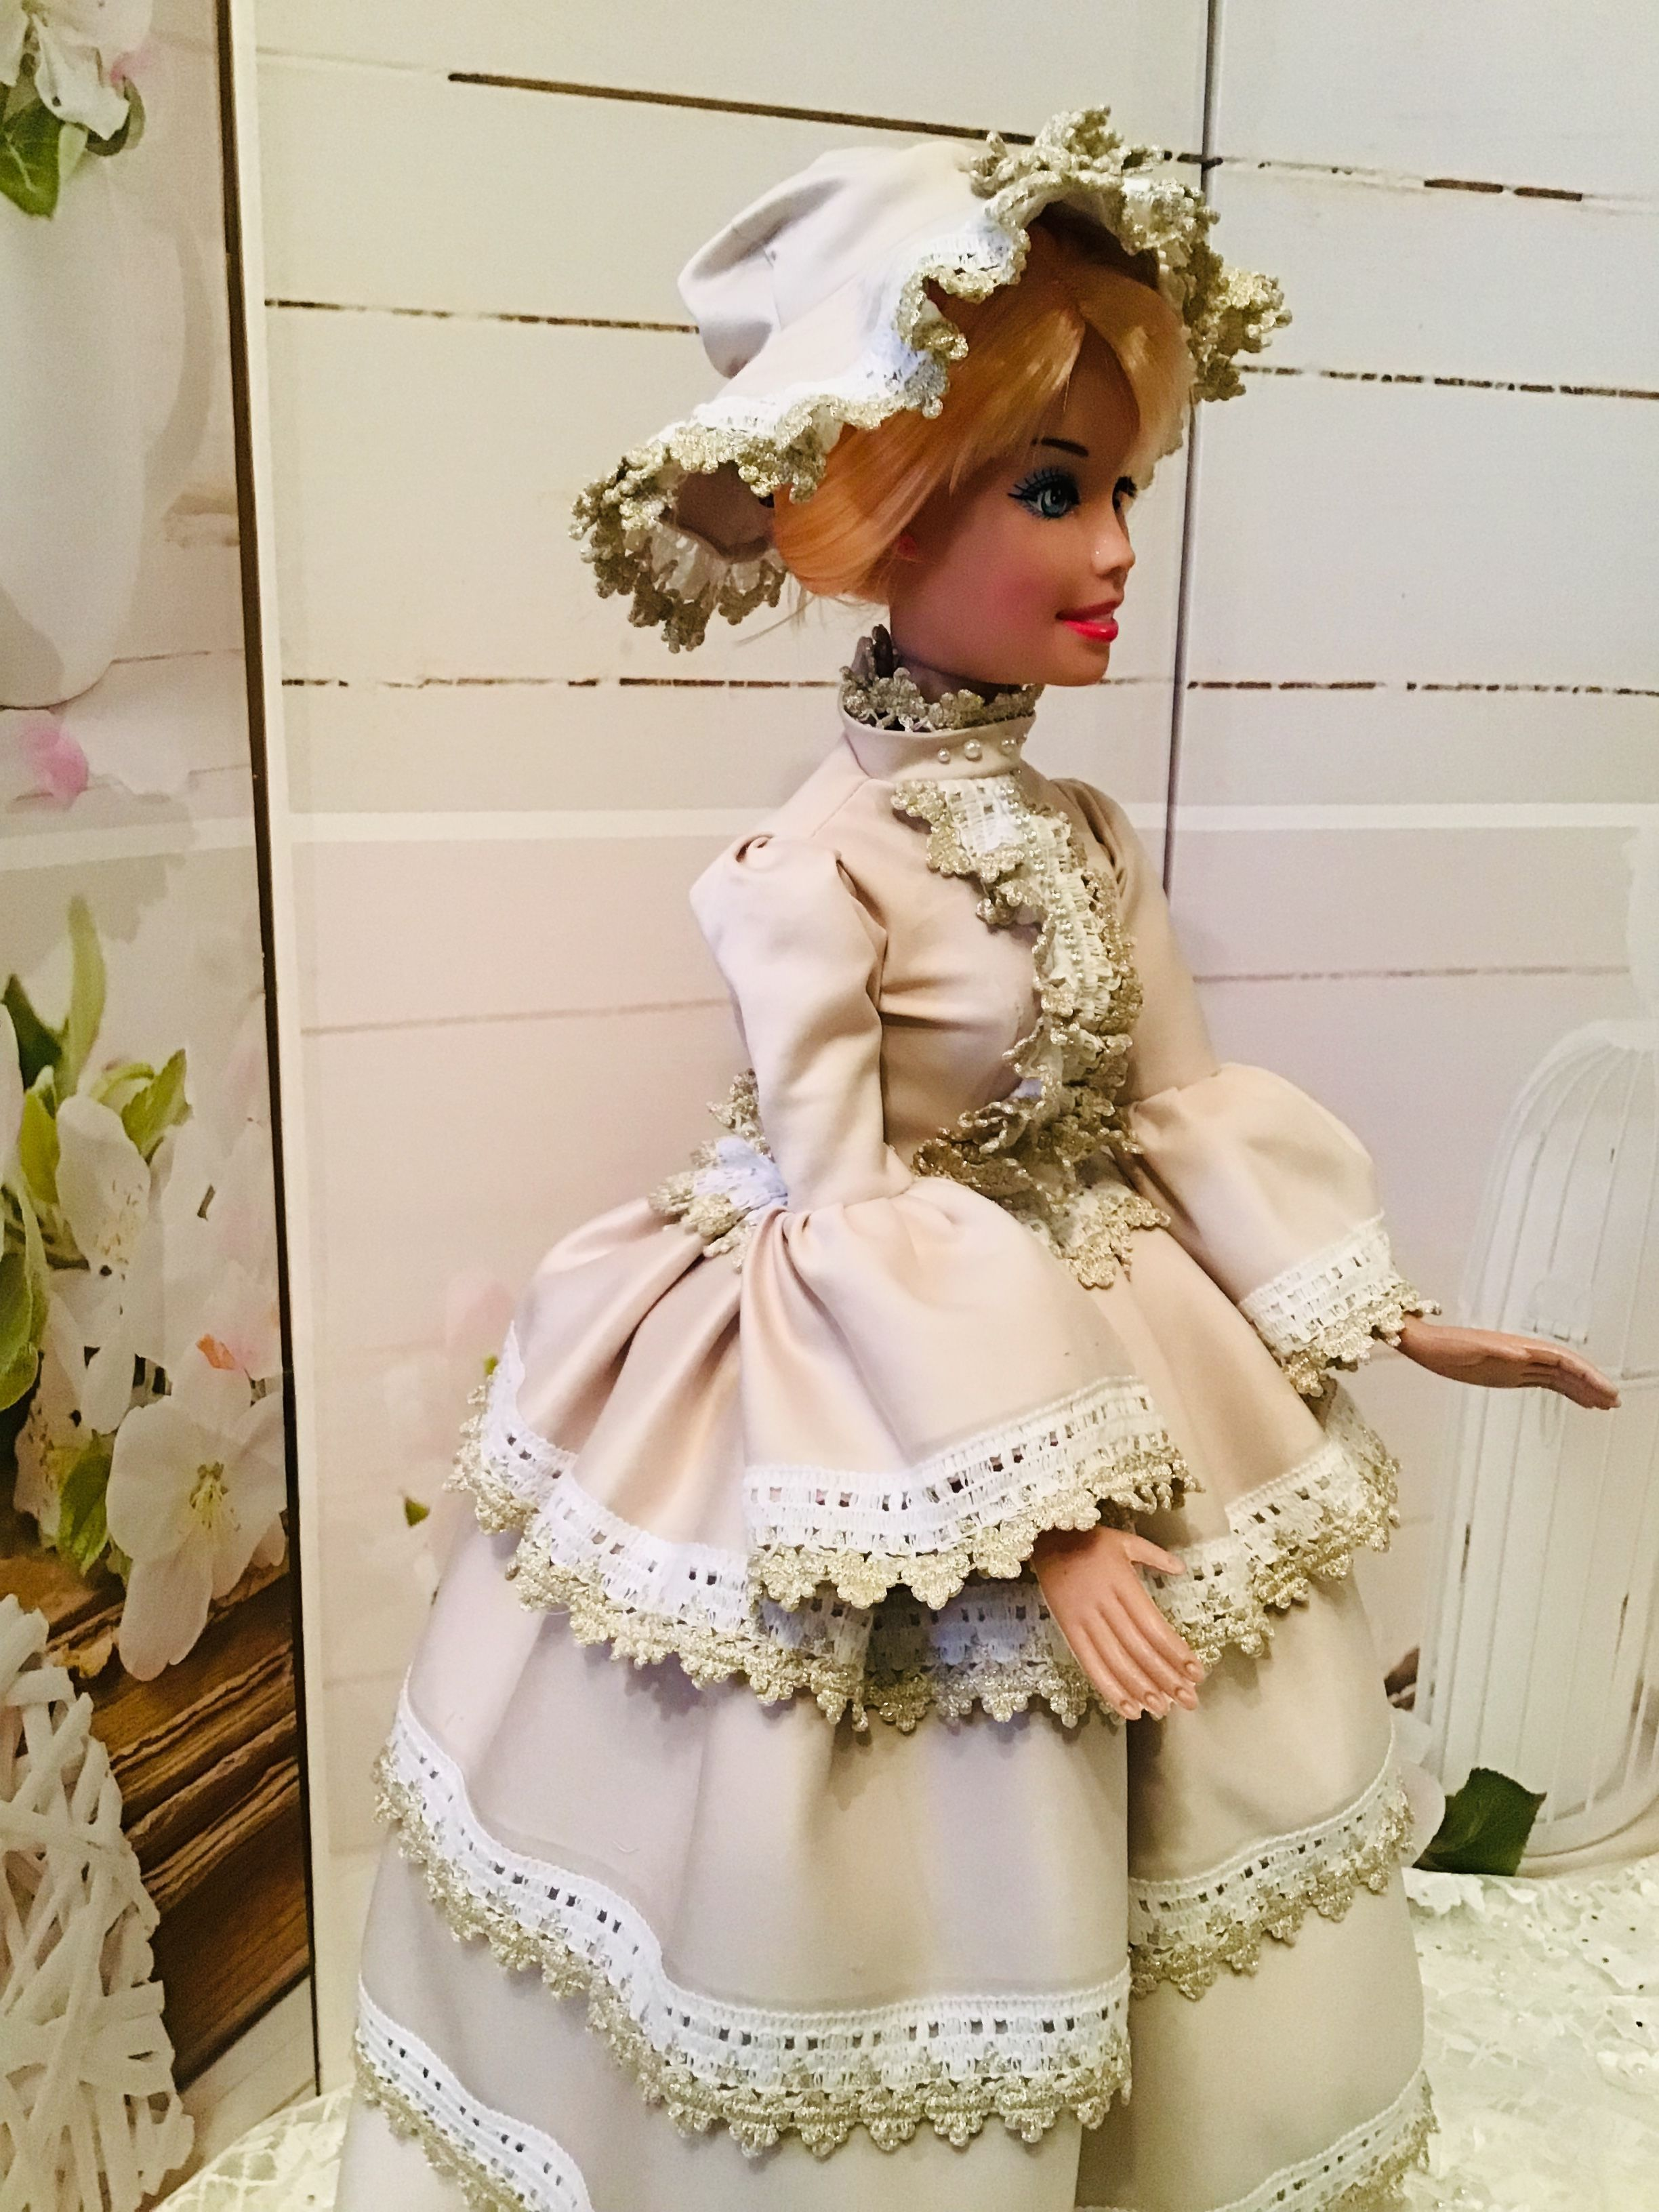 Victorian style  #dollvictoriandressstyles #dress#dress-doll#child#decor#style#designer#fabric#sewn#hand-sewn#wonderful#toys#gift#barbie#victorian#classic#handmate#hat#beautifull#doll-clothing #dollvictoriandressstyles Victorian style  #dollvictoriandressstyles #dress#dress-doll#child#decor#style#designer#fabric#sewn#hand-sewn#wonderful#toys#gift#barbie#victorian#classic#handmate#hat#beautifull#doll-clothing #dollvictoriandressstyles